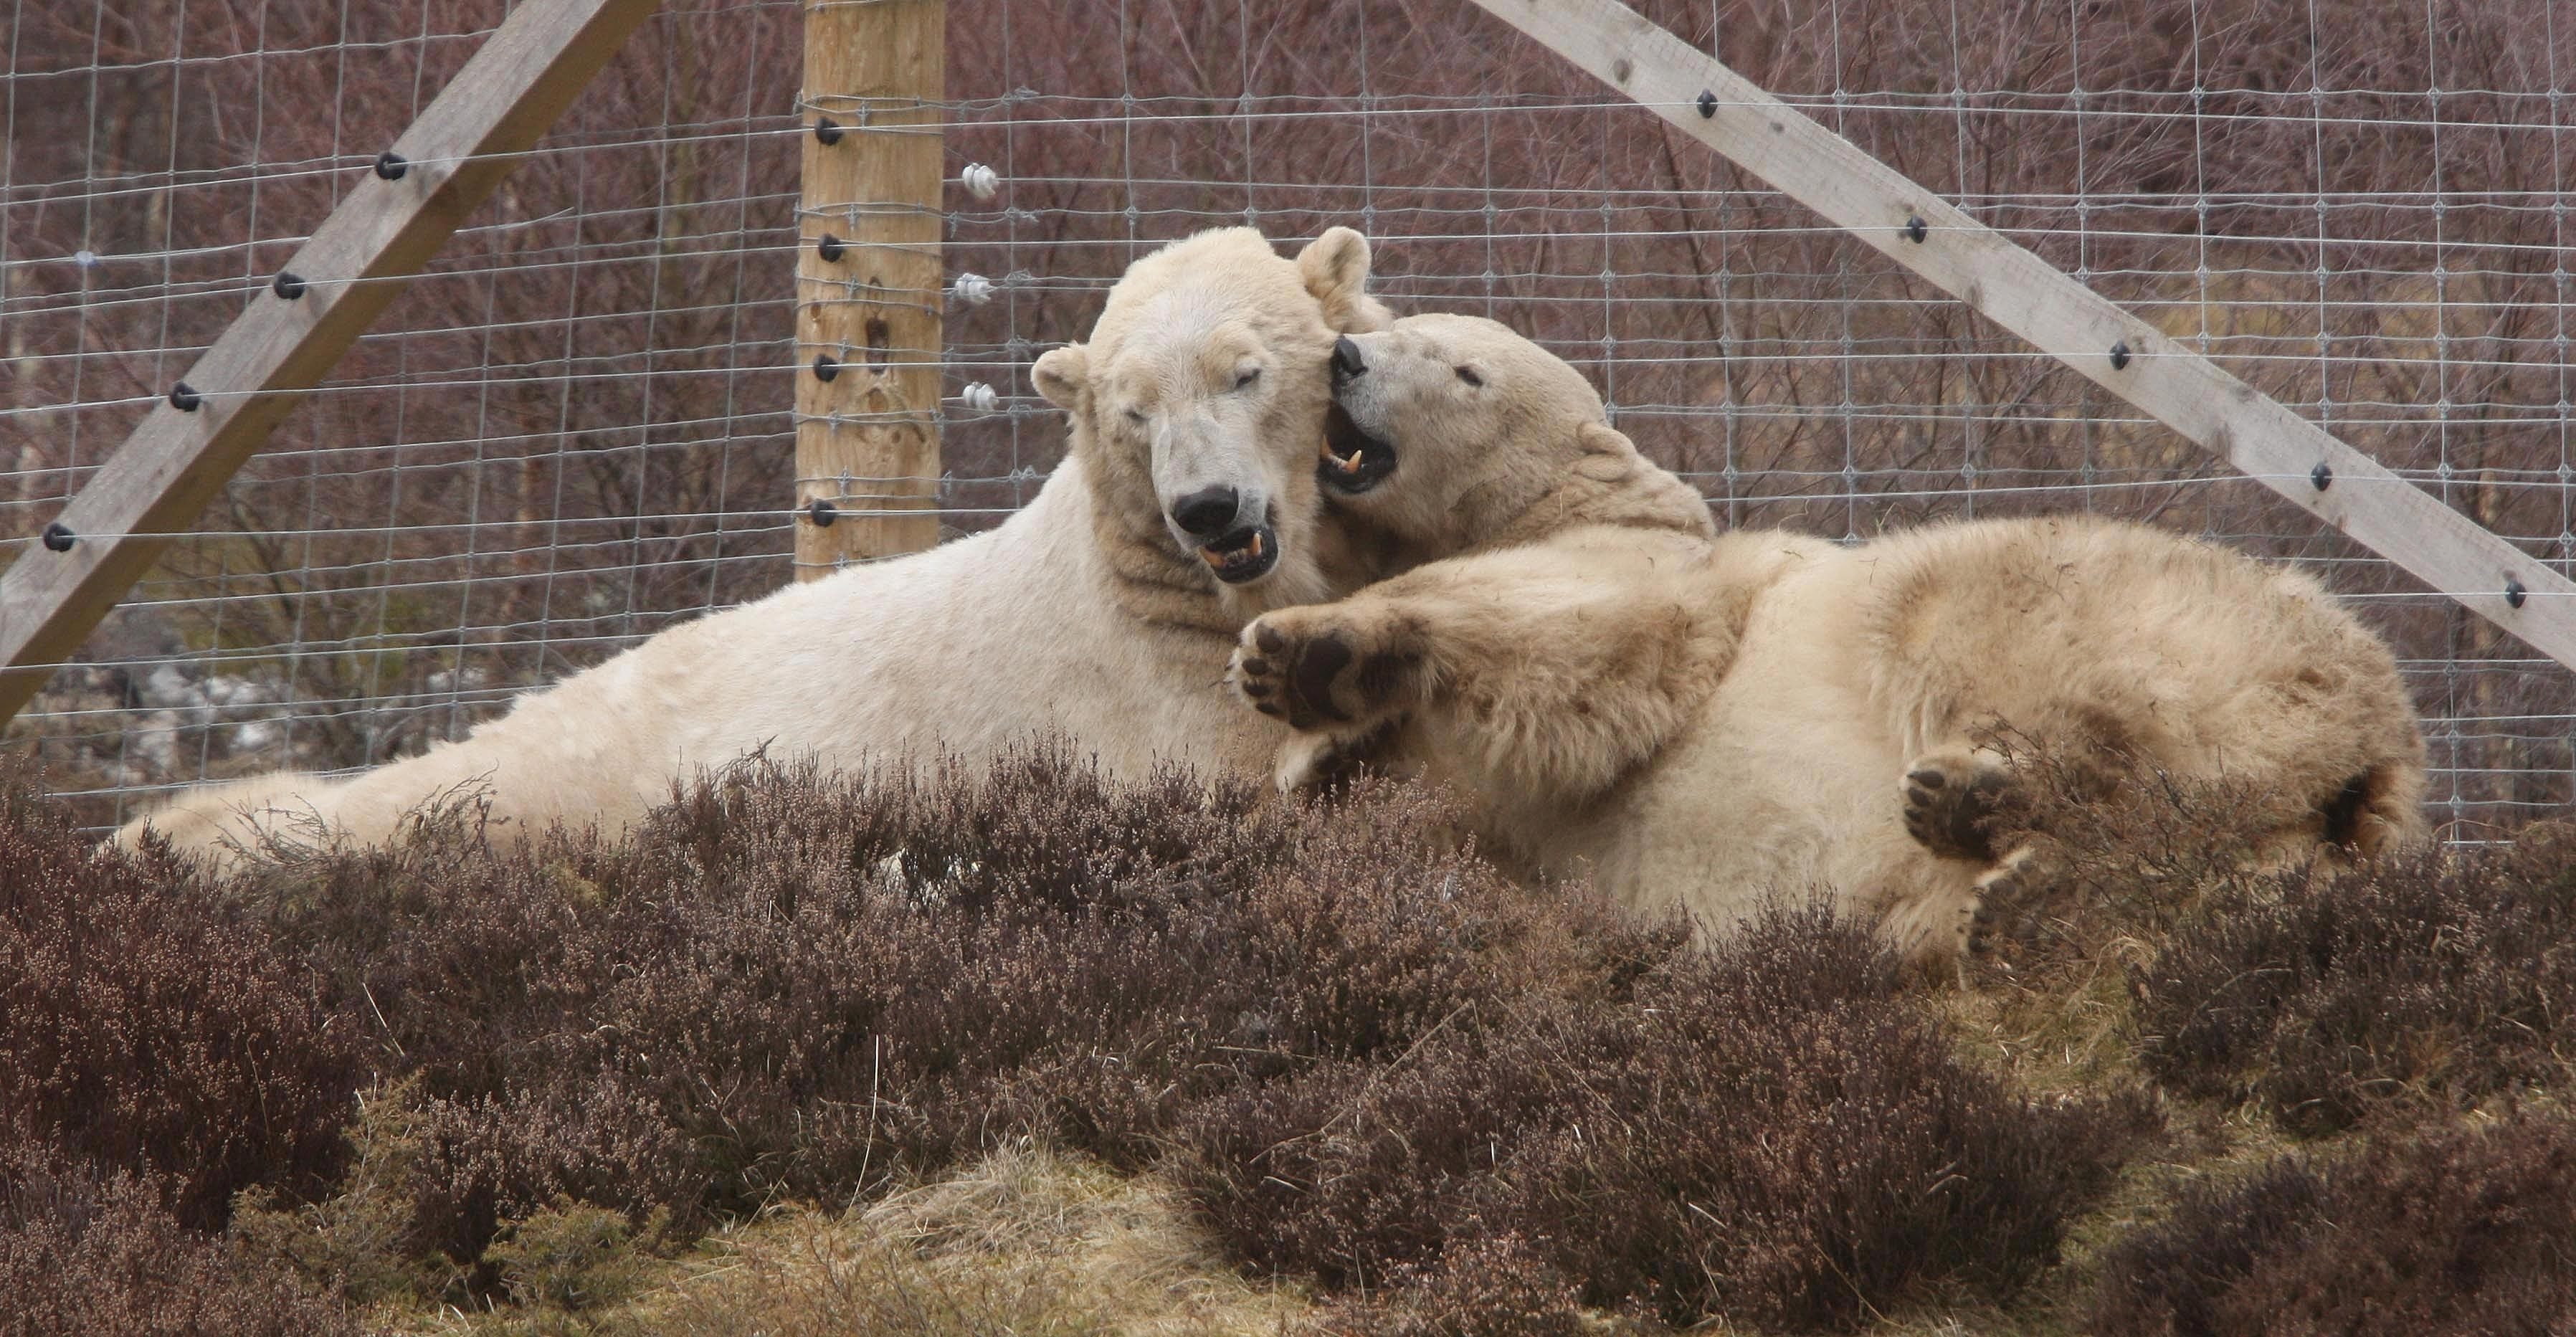 Victoria is currently out of public viewing because it is believed she is pregnant after mating with Arktos - one of the two male polar bears at the zoo - in the spring.